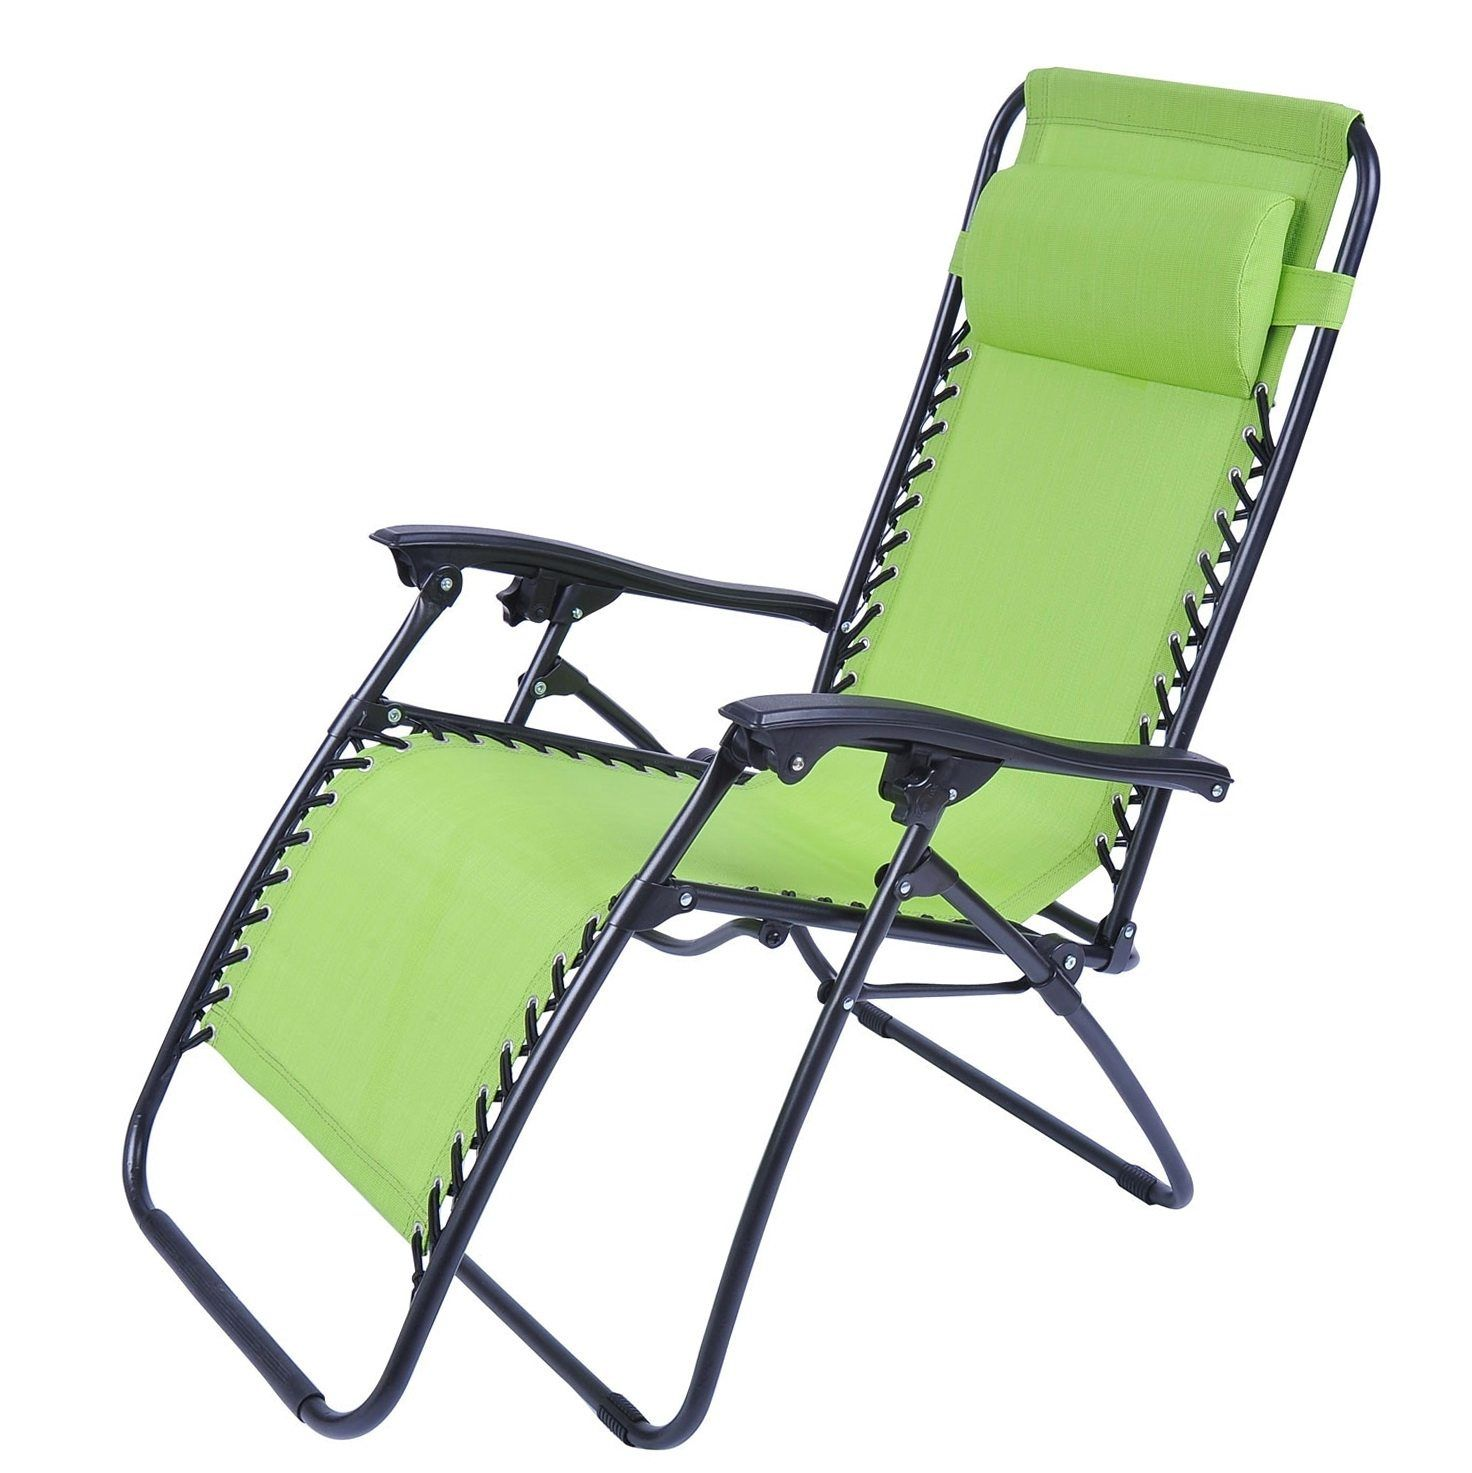 Lounge Chair Outdoor Folding Folding Chaise Lounge Chair Patio Outdoor